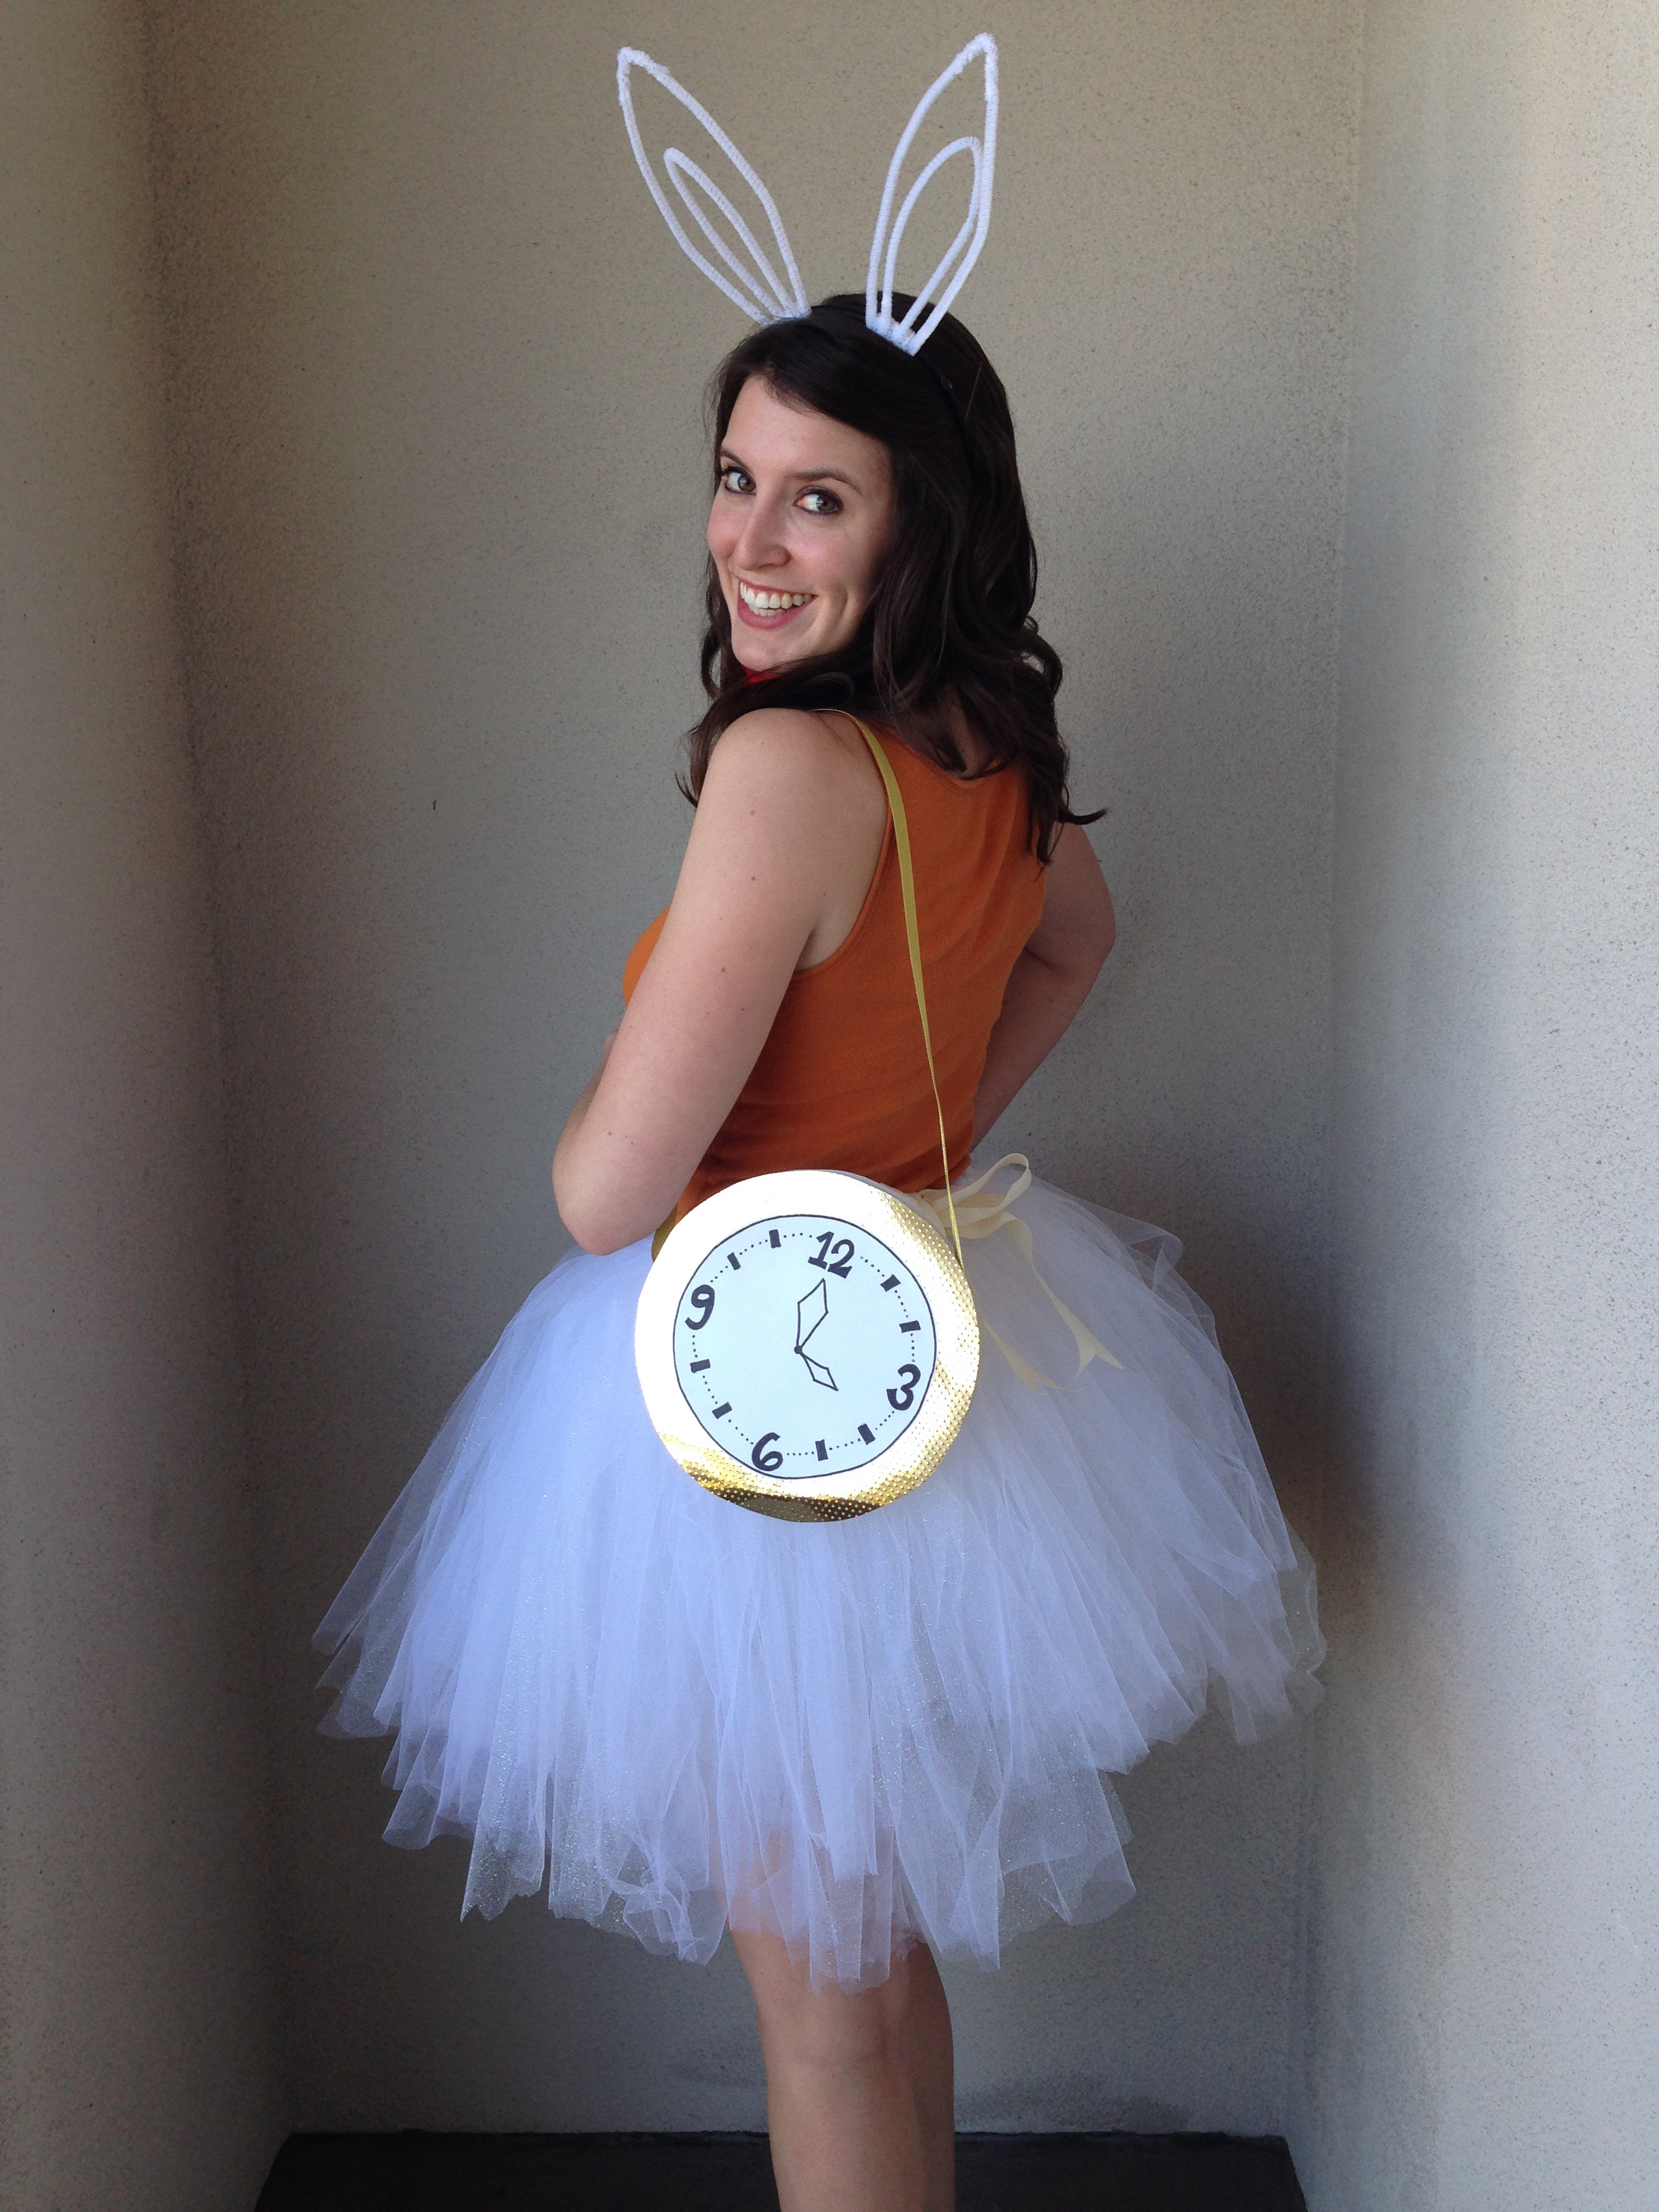 Best ideas about DIY Rabbit Costume . Save or Pin Alice in Wonderland Rabbit DIY Costume – Bunny Baubles Now.